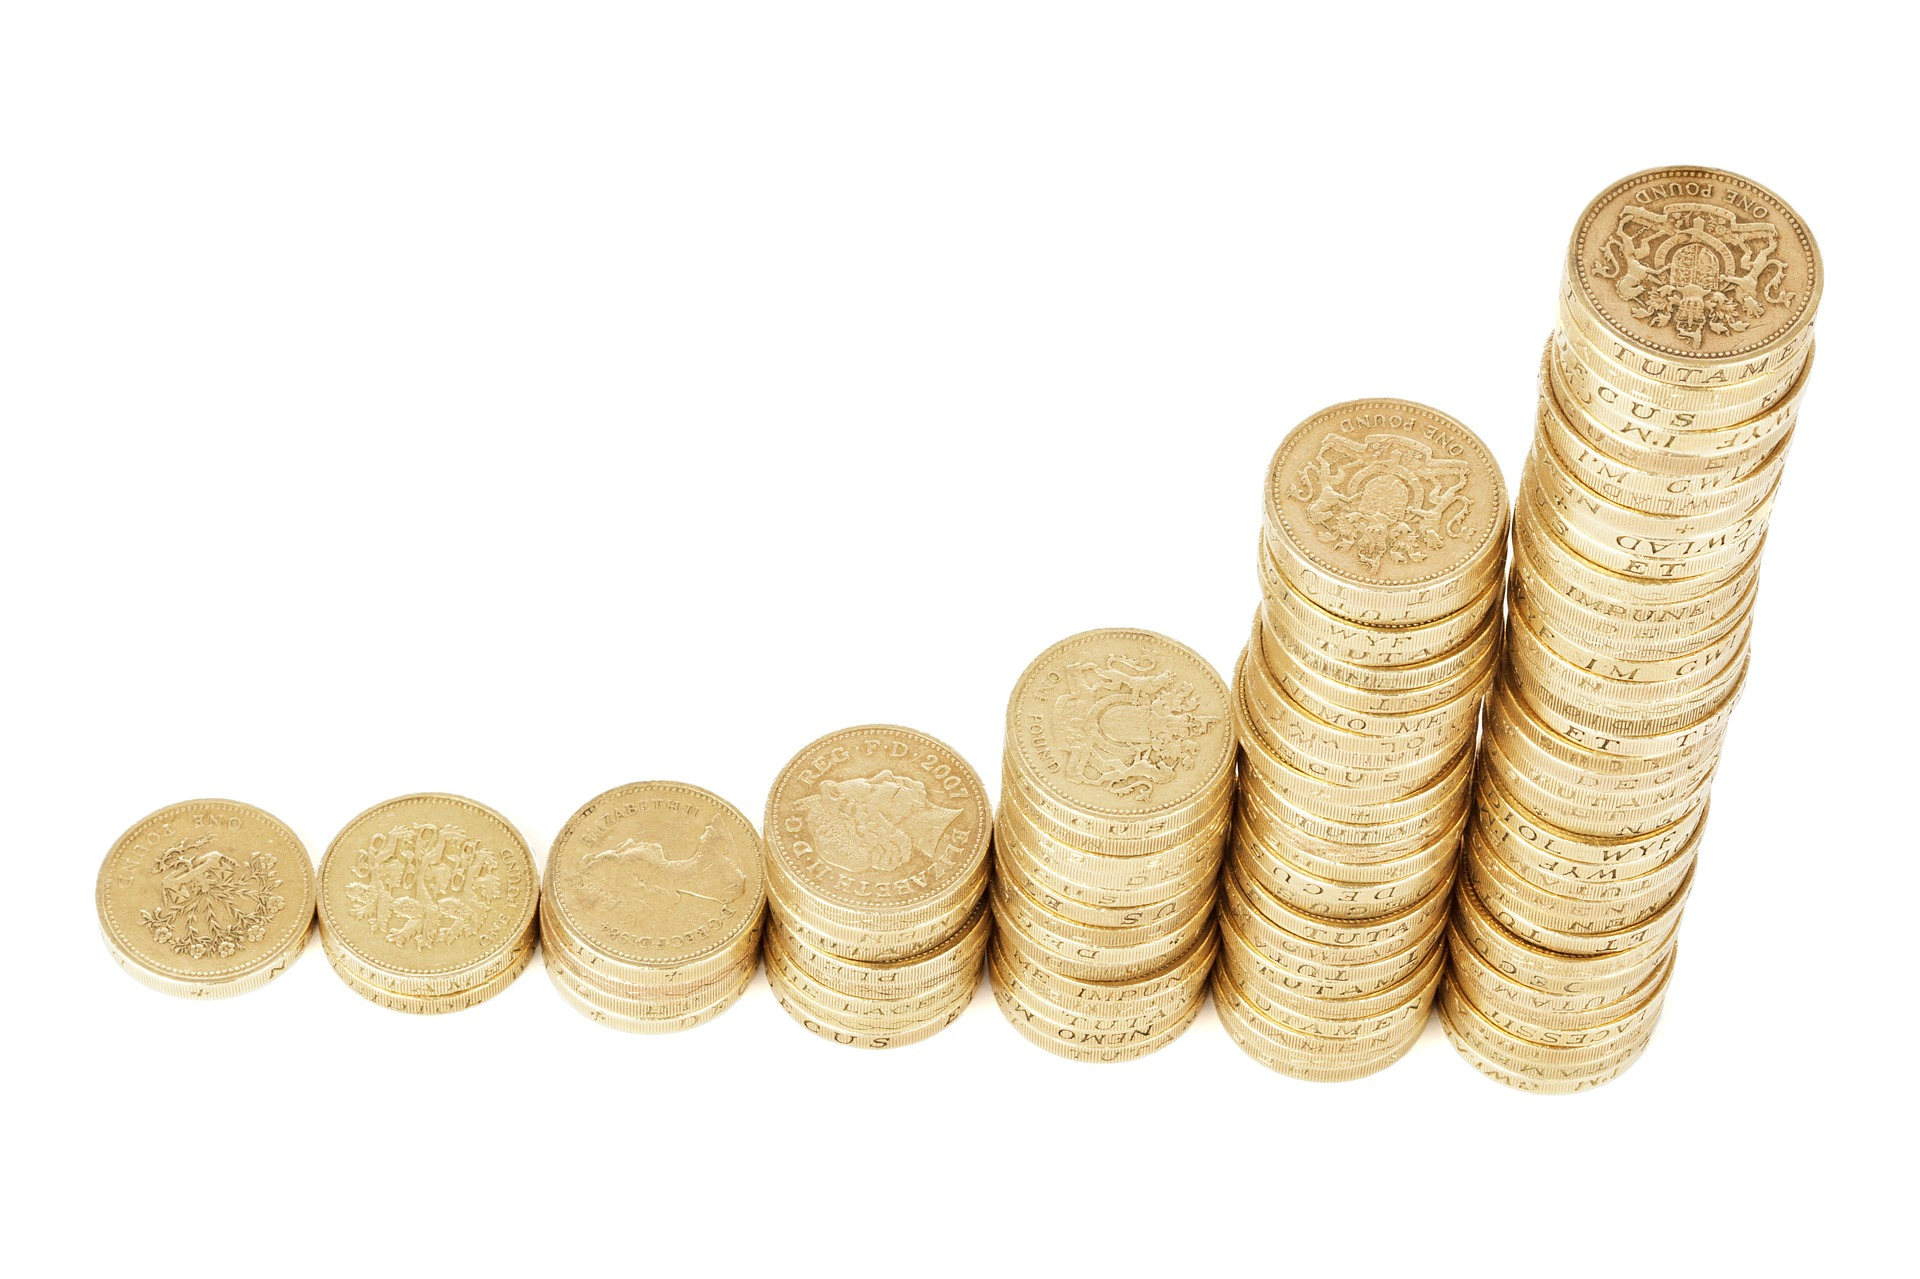 Stack of gold coins, lined up like a bar graph with just a few on the left side and a large sum on the right.